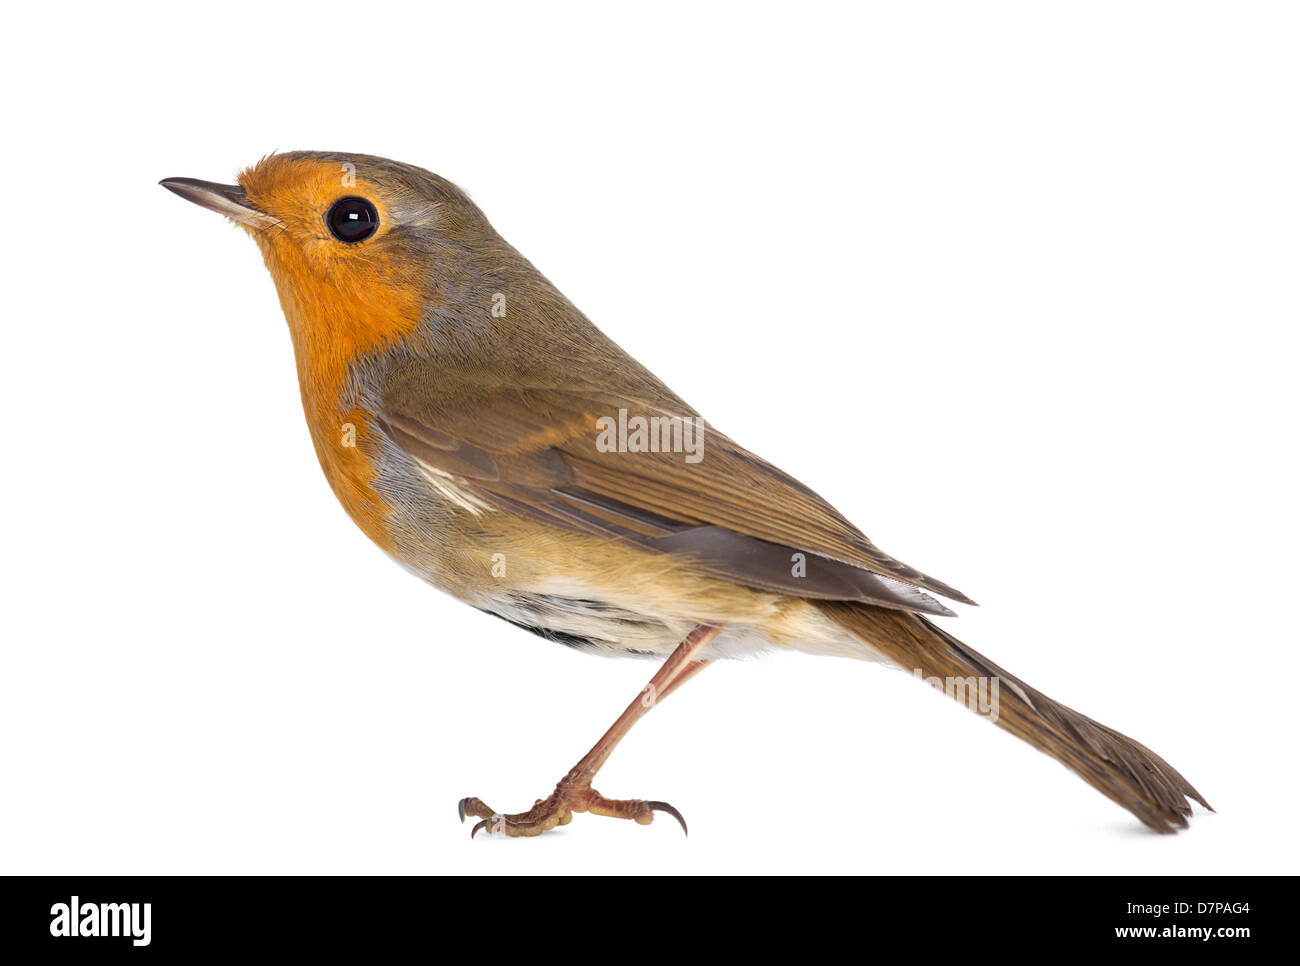 European Robin, Erithacus rubecula, standing against white background - Stock Image